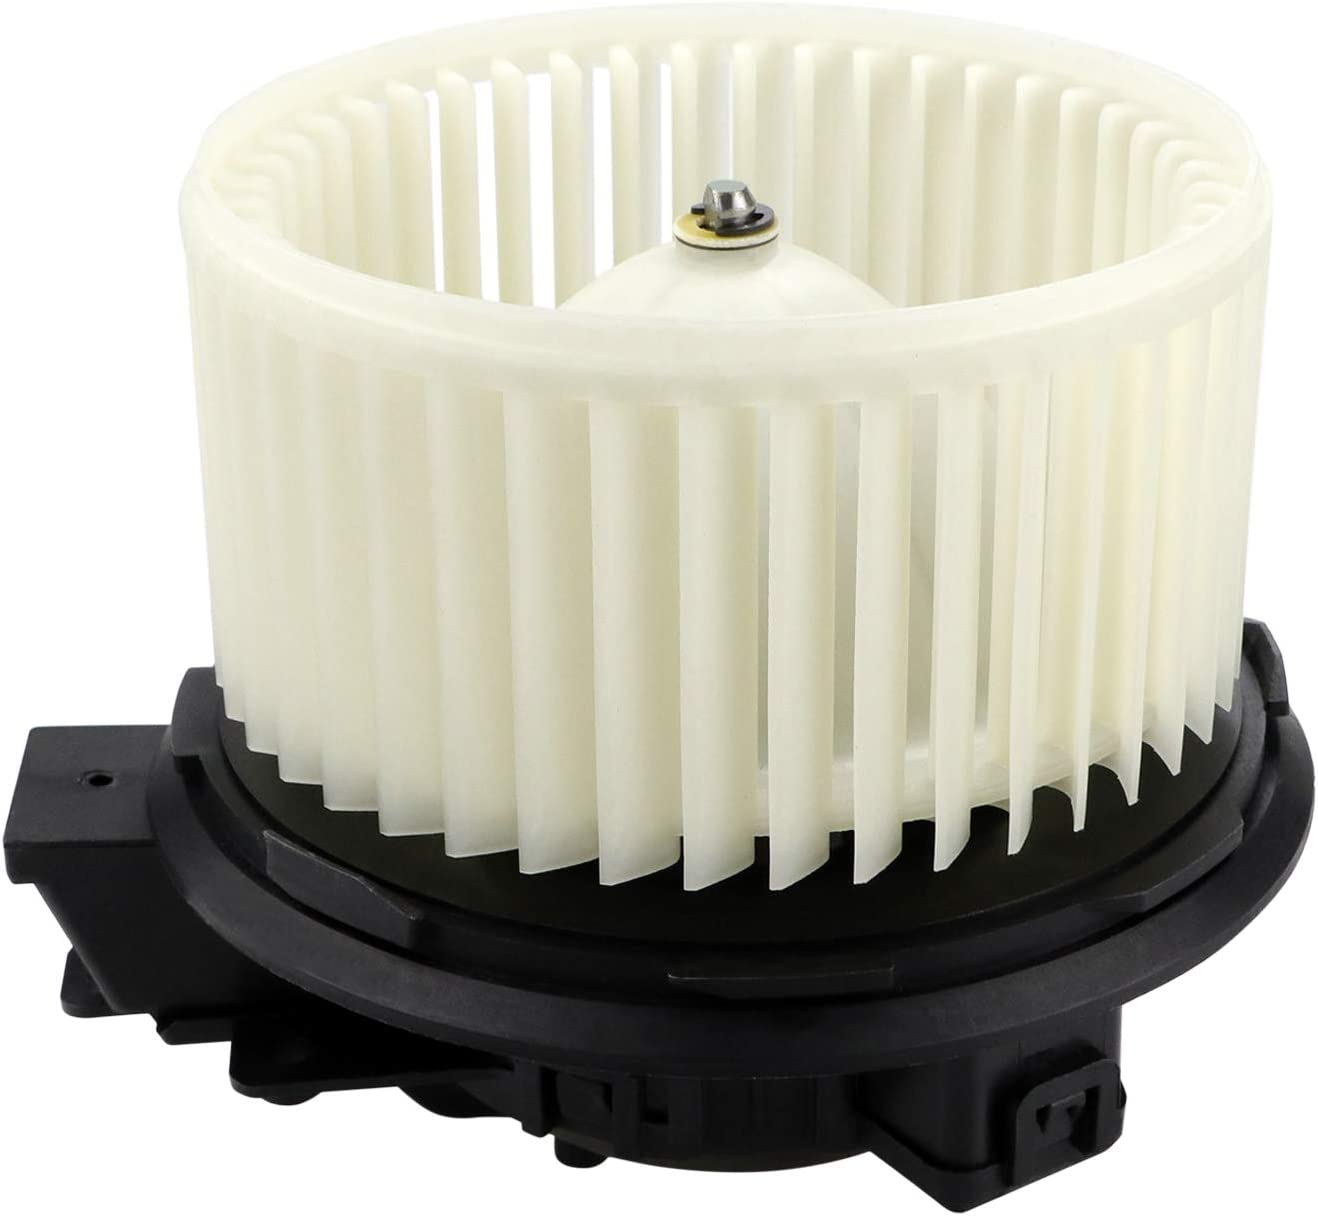 CG1Z 19805 D HVAC Heater Blower Motor with Fan Cage Replaces 700274 CG1Z-19805-D PM9393 2013 Ford Taurus//Flex Fits For 2012 2013 Lincoln MKT